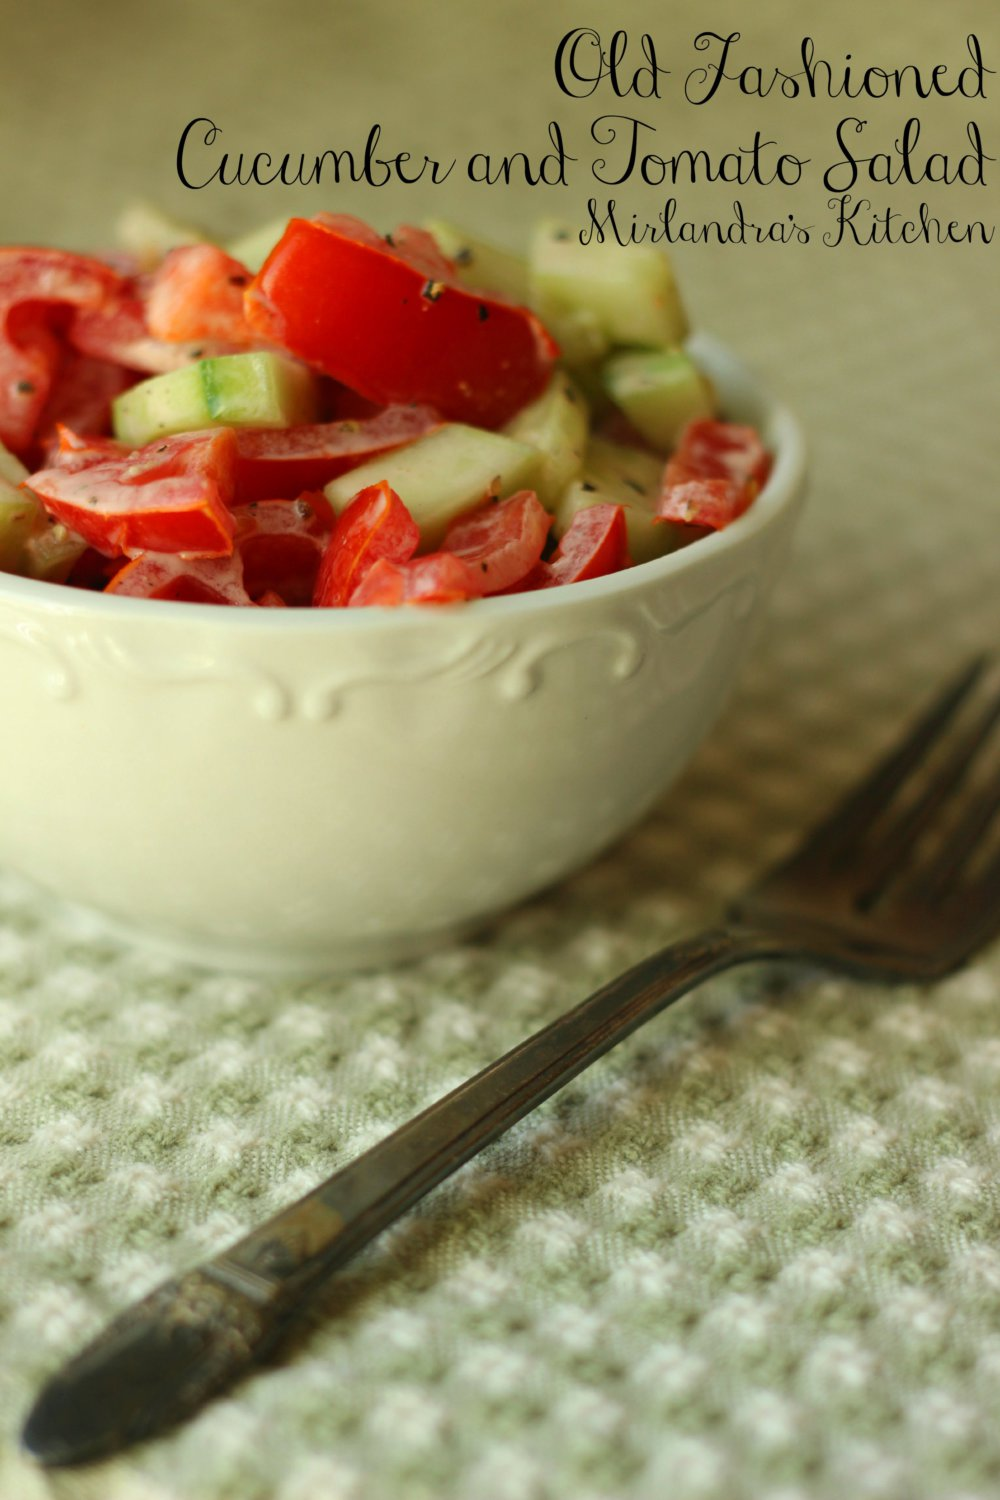 Old Fashioned Cucumber and Tomato Salad